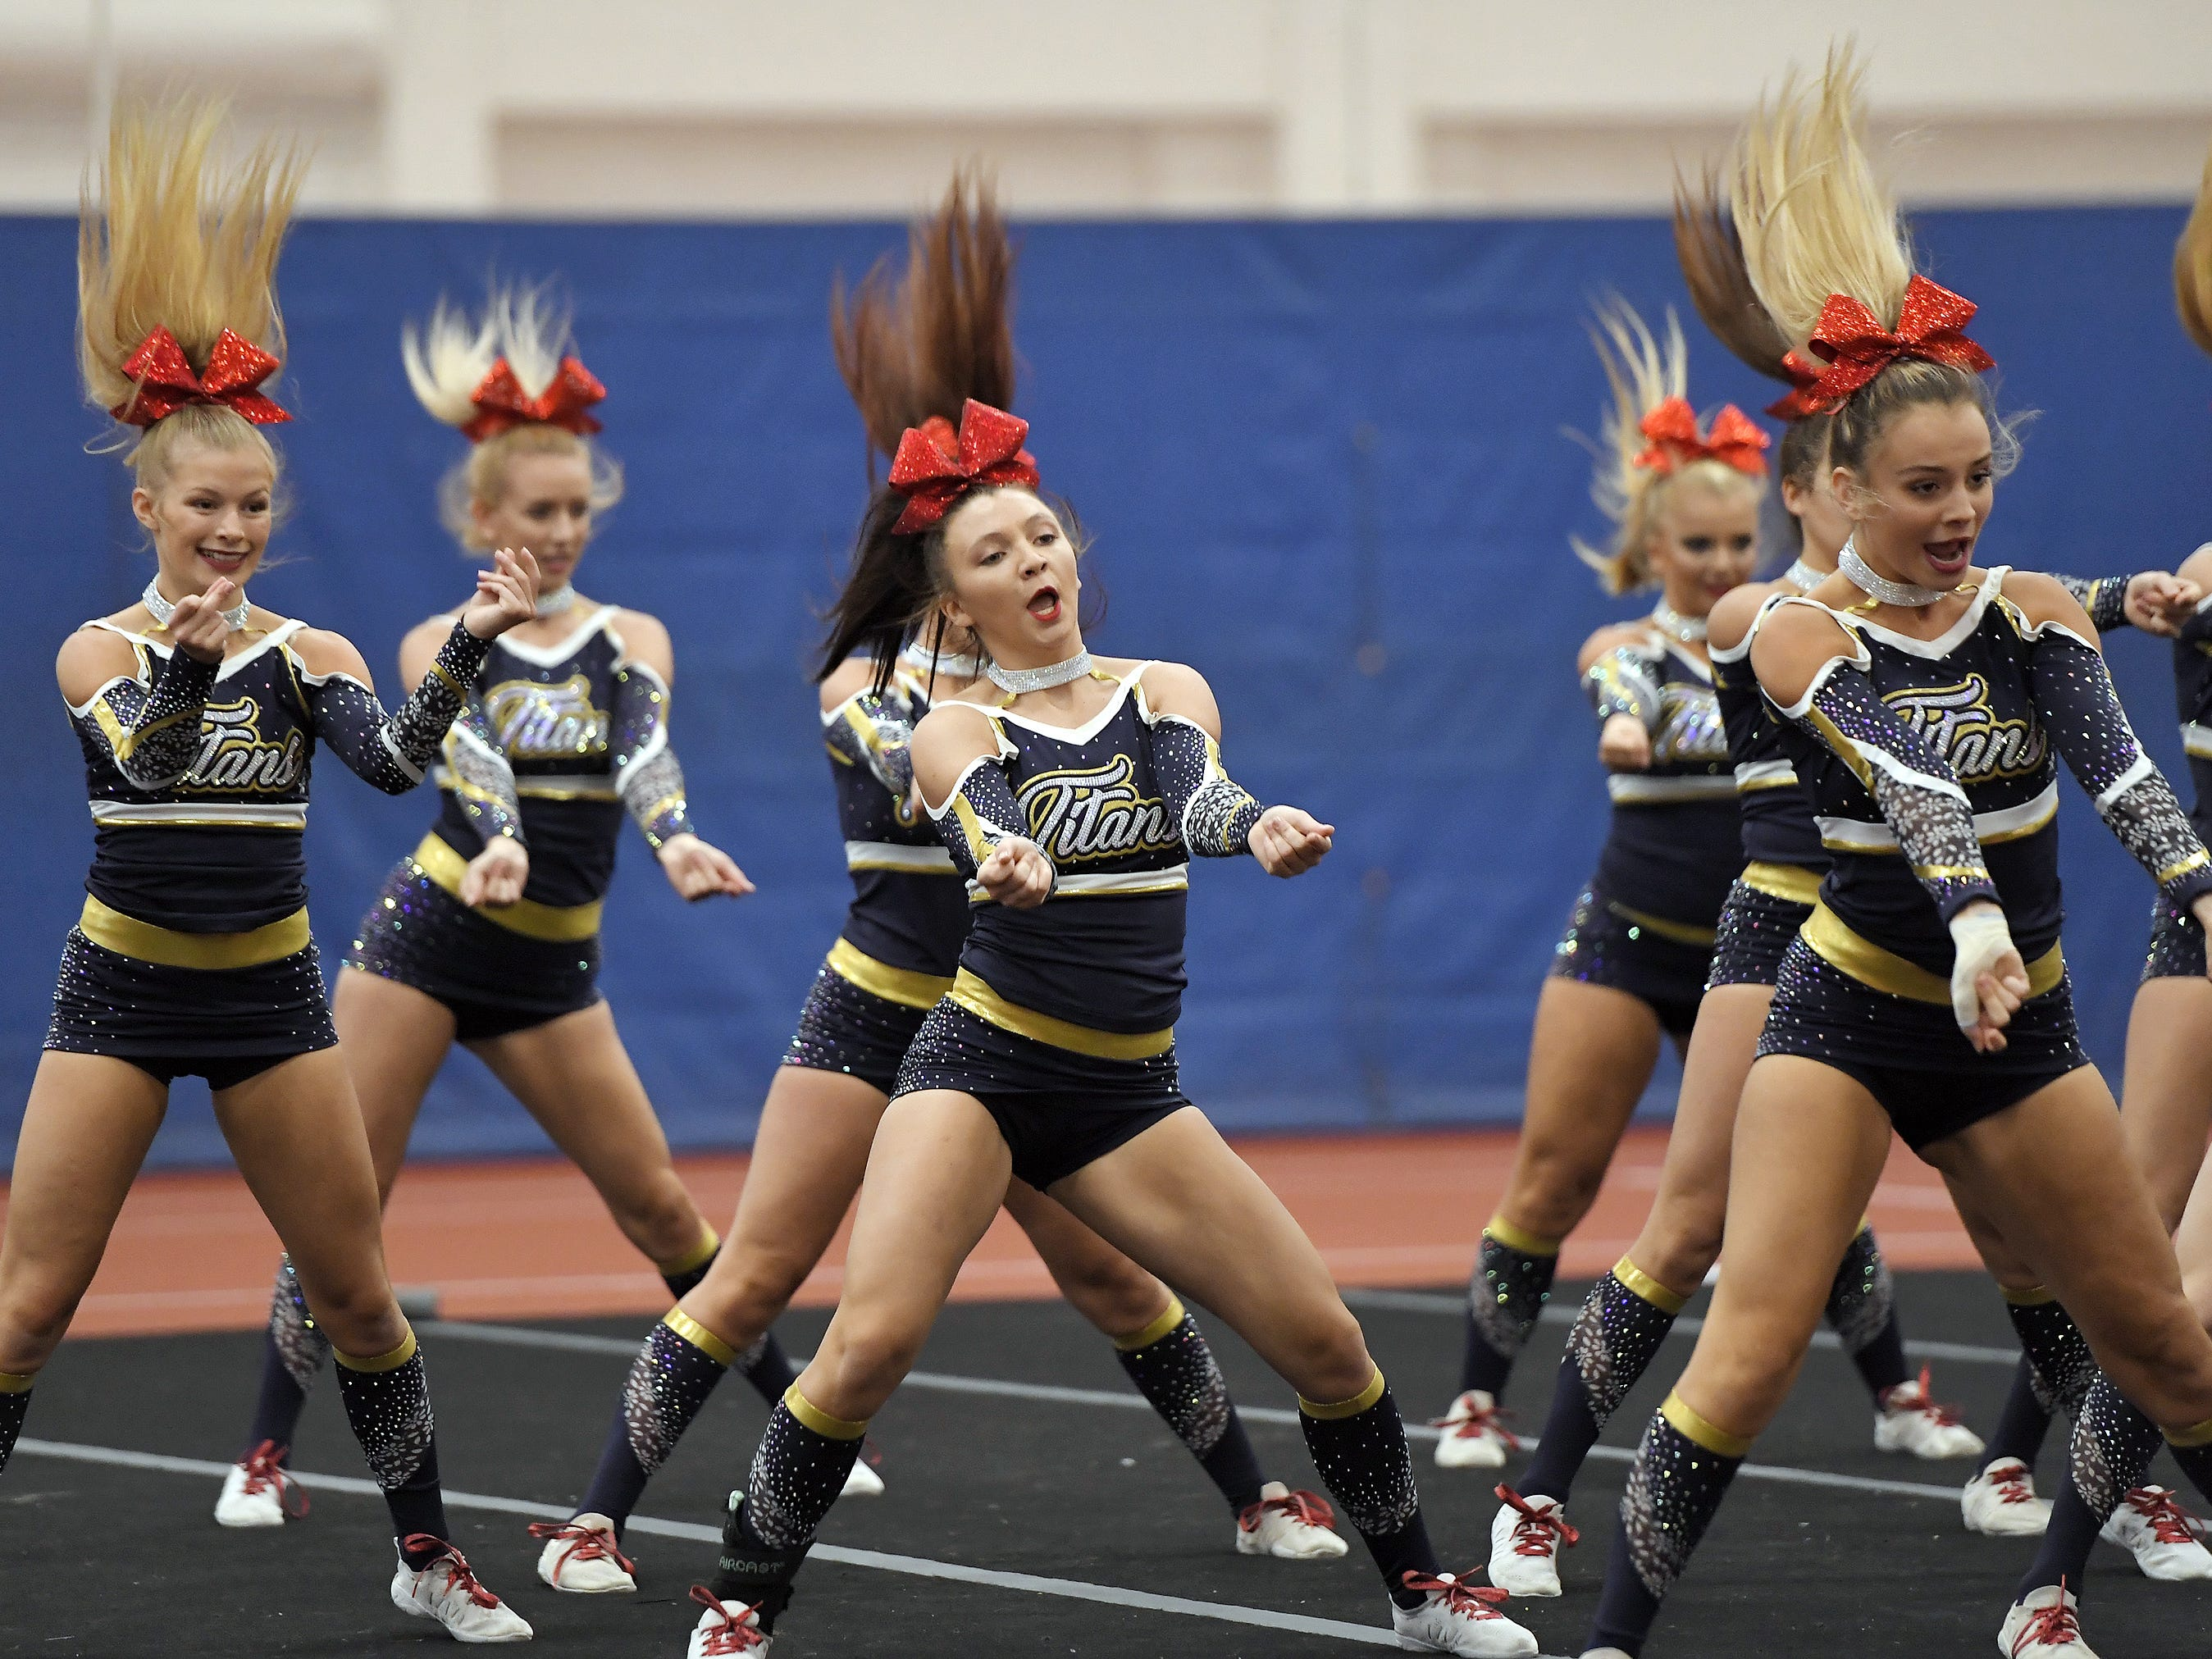 Webster Thomas cheerleaders perform their routine during the Section V Fall Cheerleading Championships at RIT, Saturday, Oct. 27, 2018.